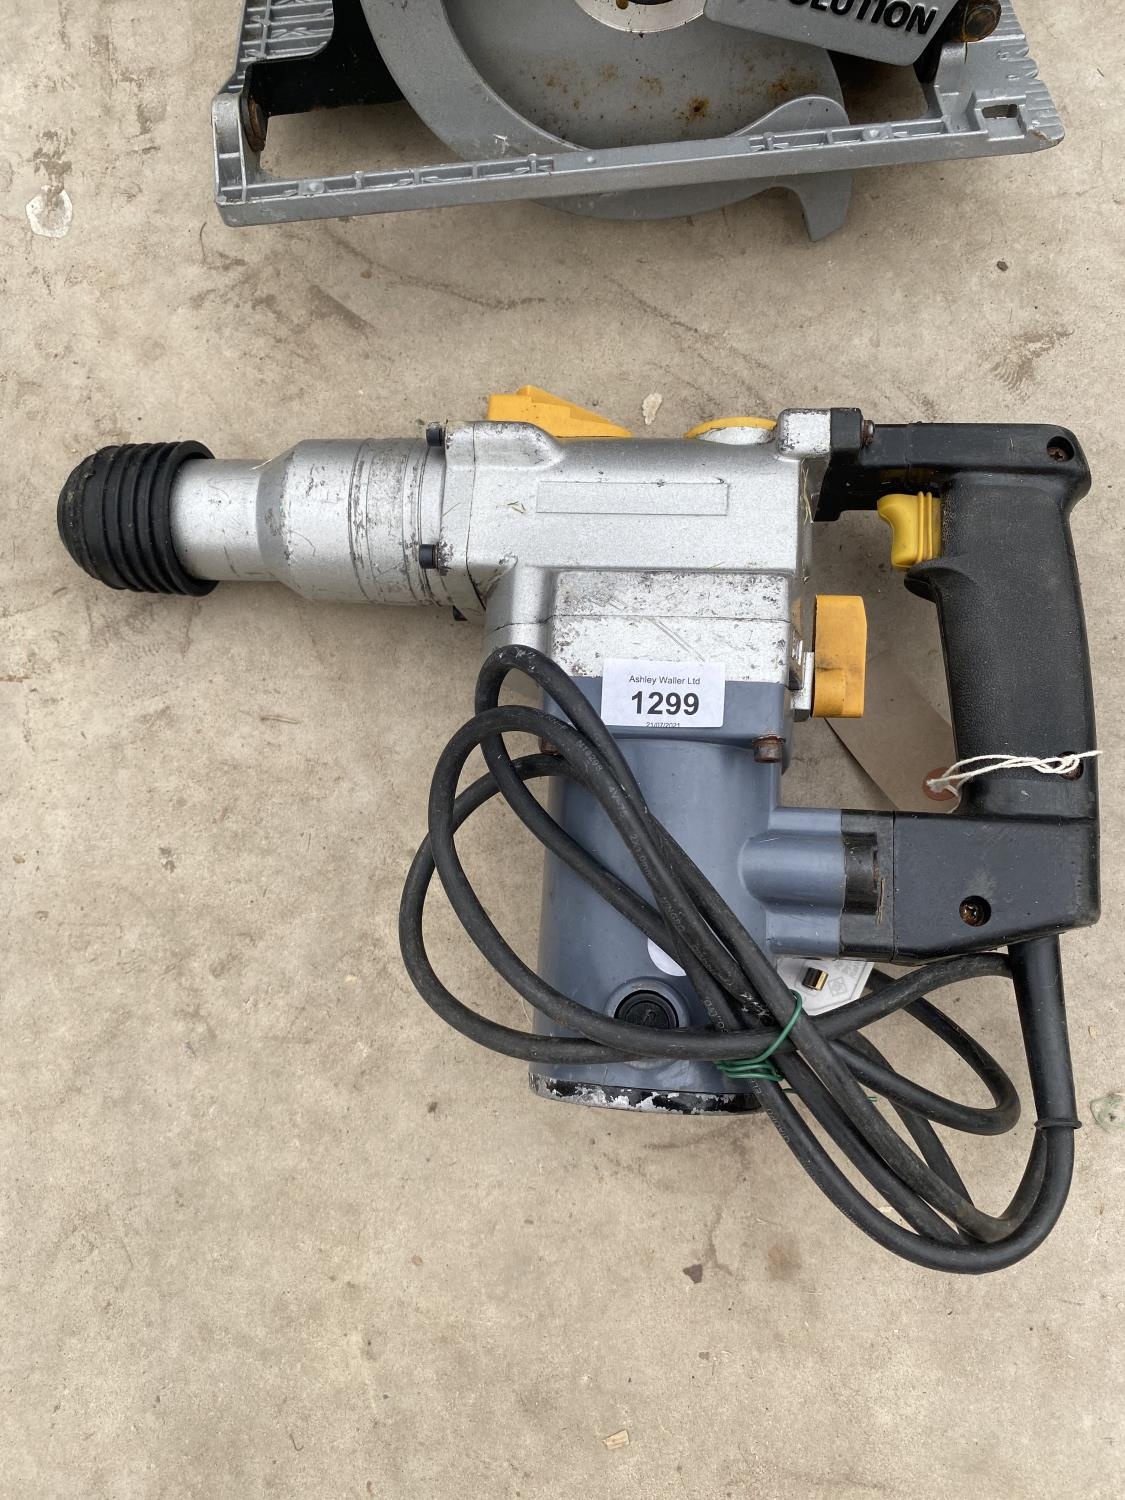 AN EVOLUTION CIRCULAR SAW AND AN SDS DRILL - Image 2 of 3